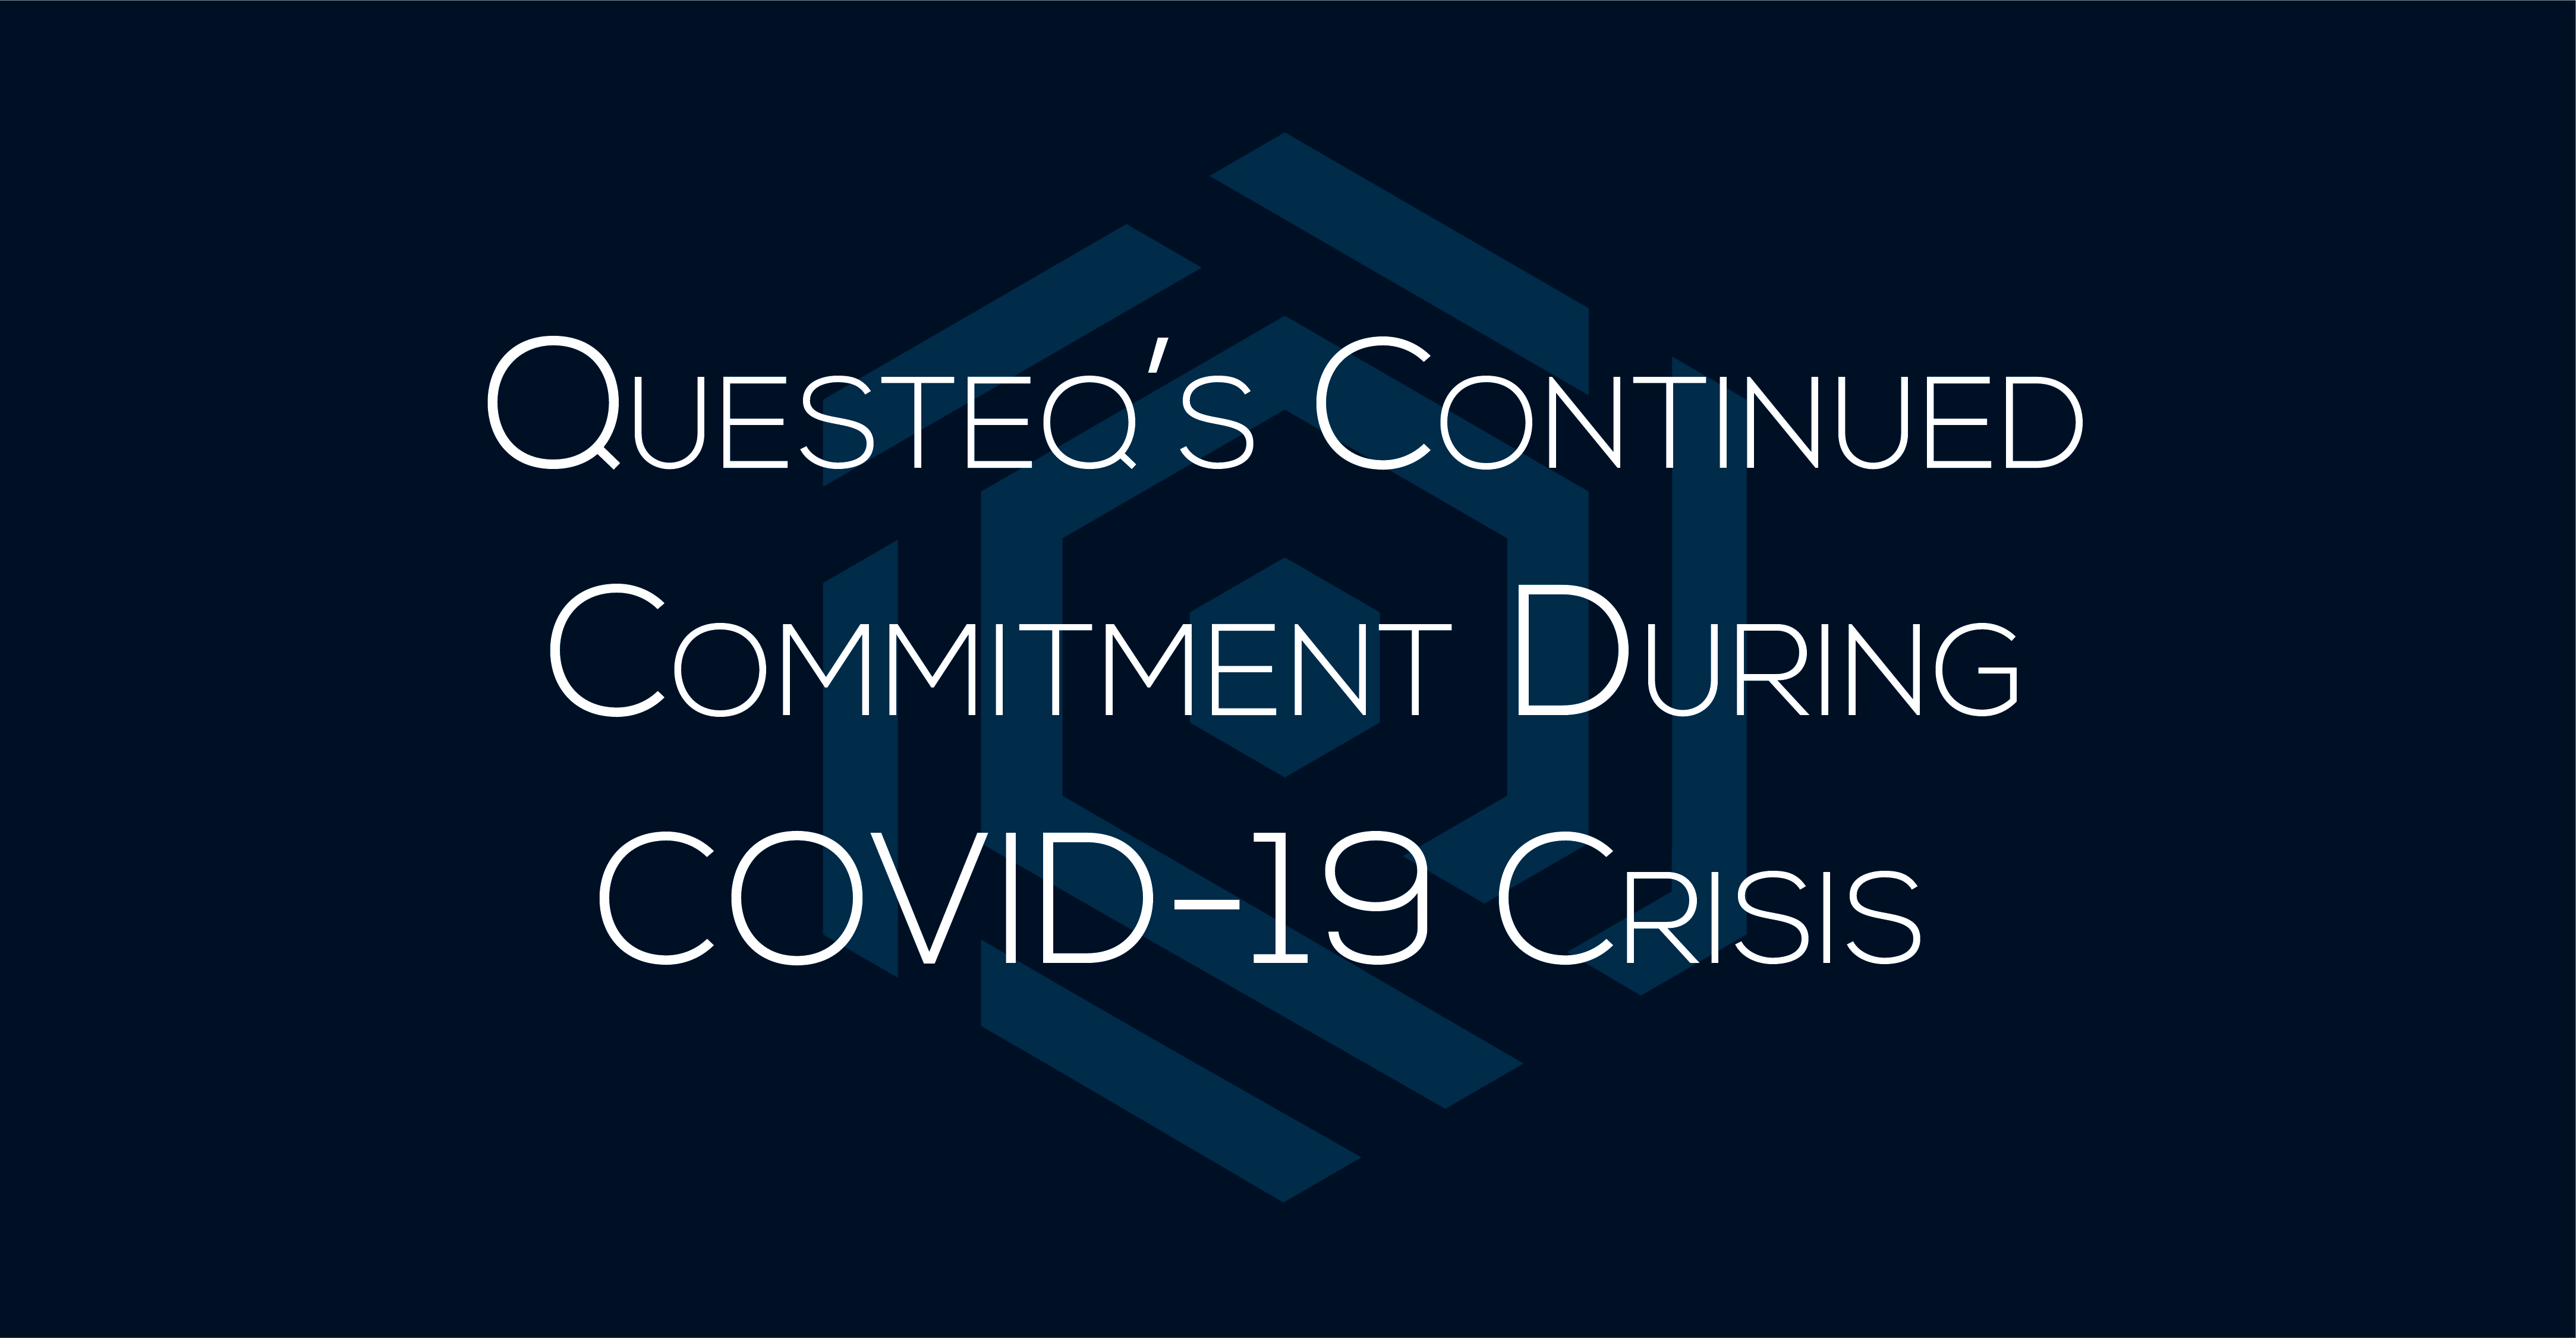 Questeq's Continued Commitment During COVID-19 Crisis